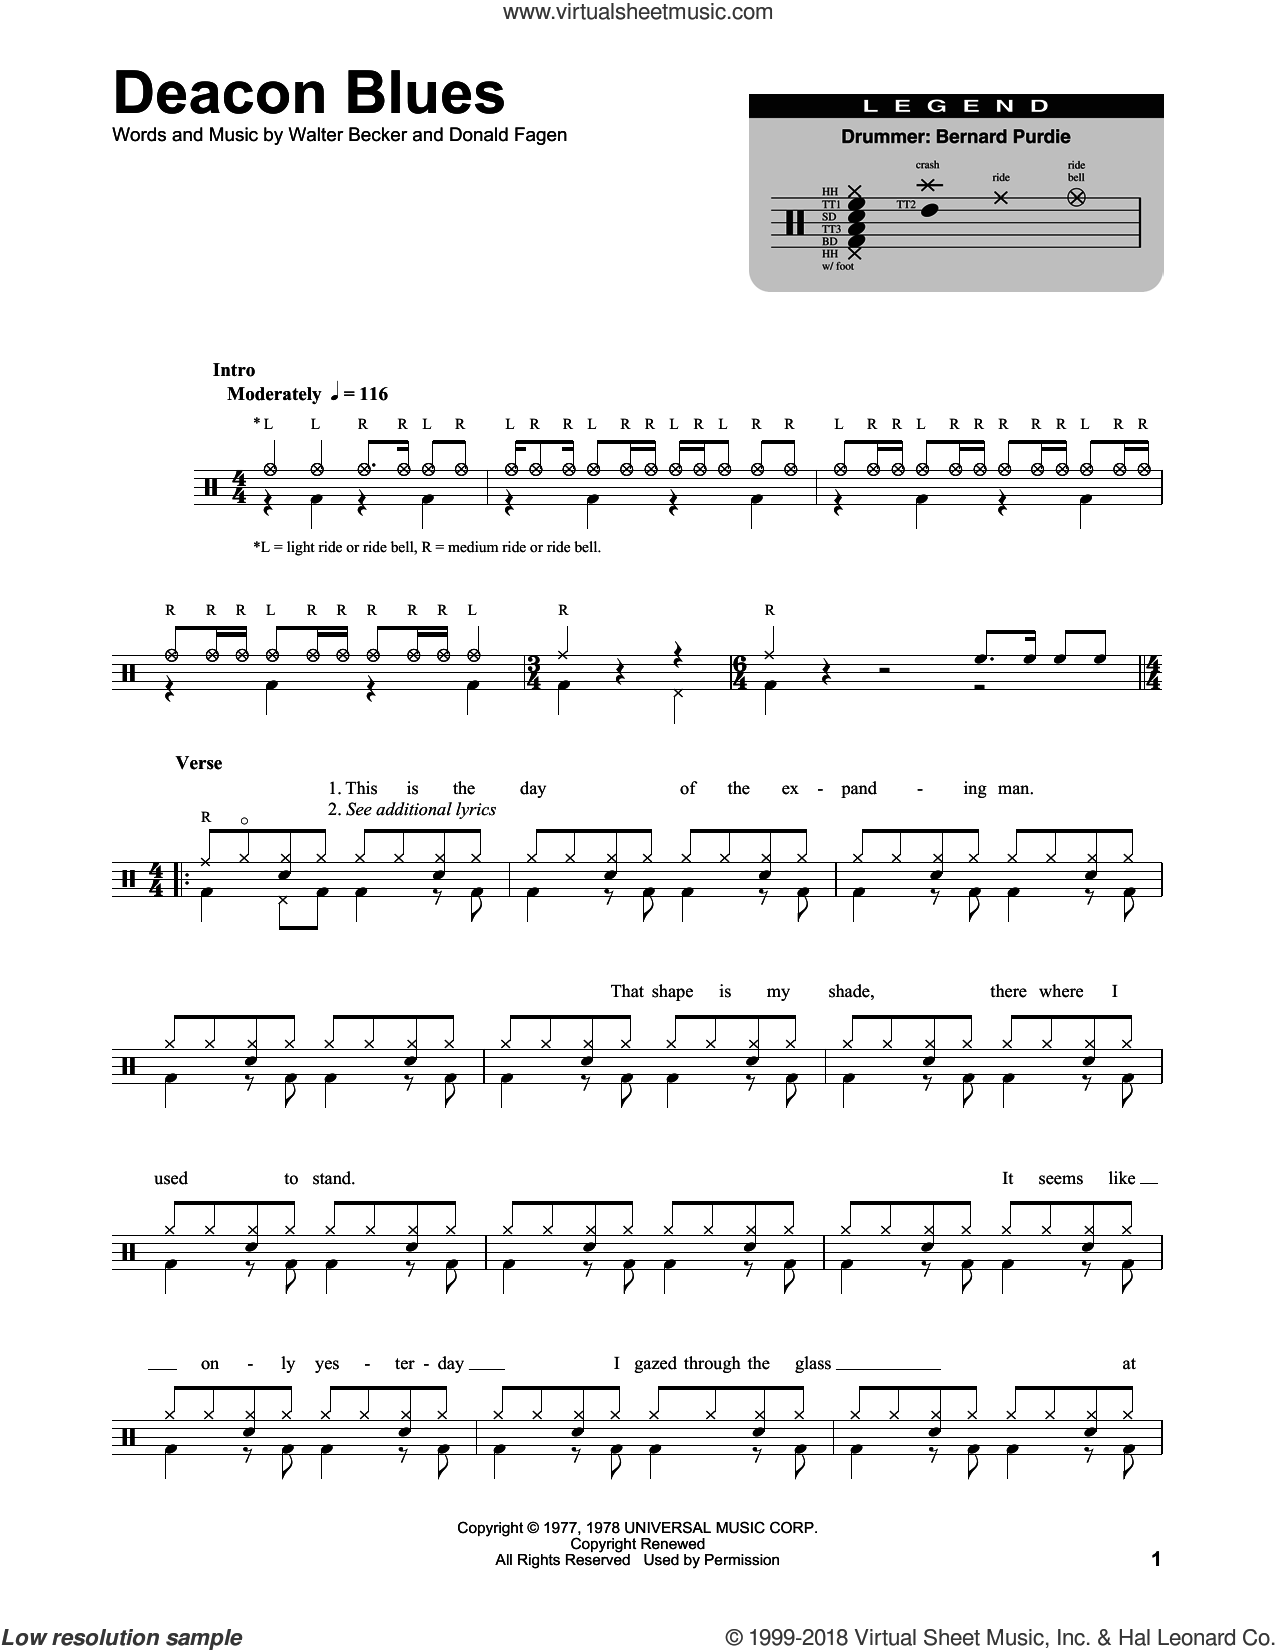 Deacon Blues sheet music for drums by Walter Becker and Donald Fagen. Score Image Preview.